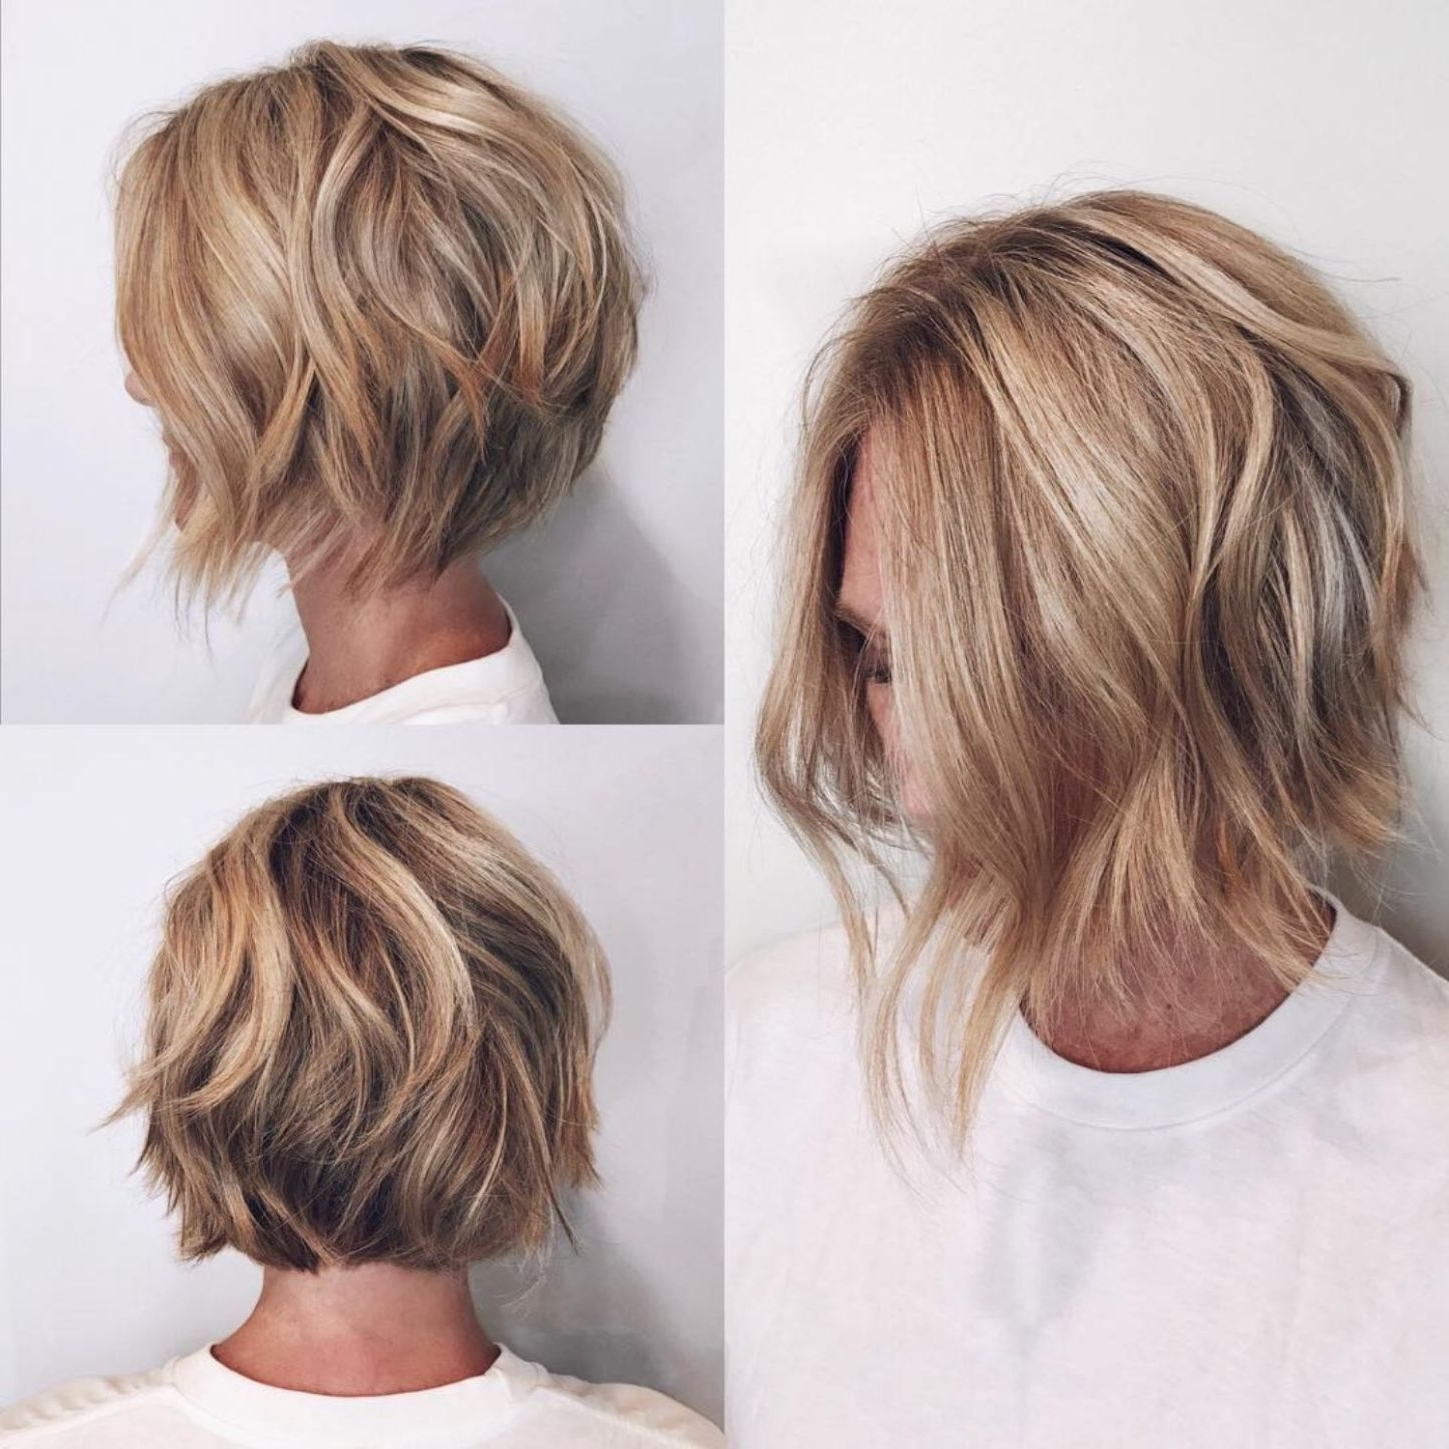 2017 Curly Caramel Blonde Bob Hairstyles In 60 Layered Bob Styles: Modern Haircuts With Layers For Any Occasion (View 3 of 20)